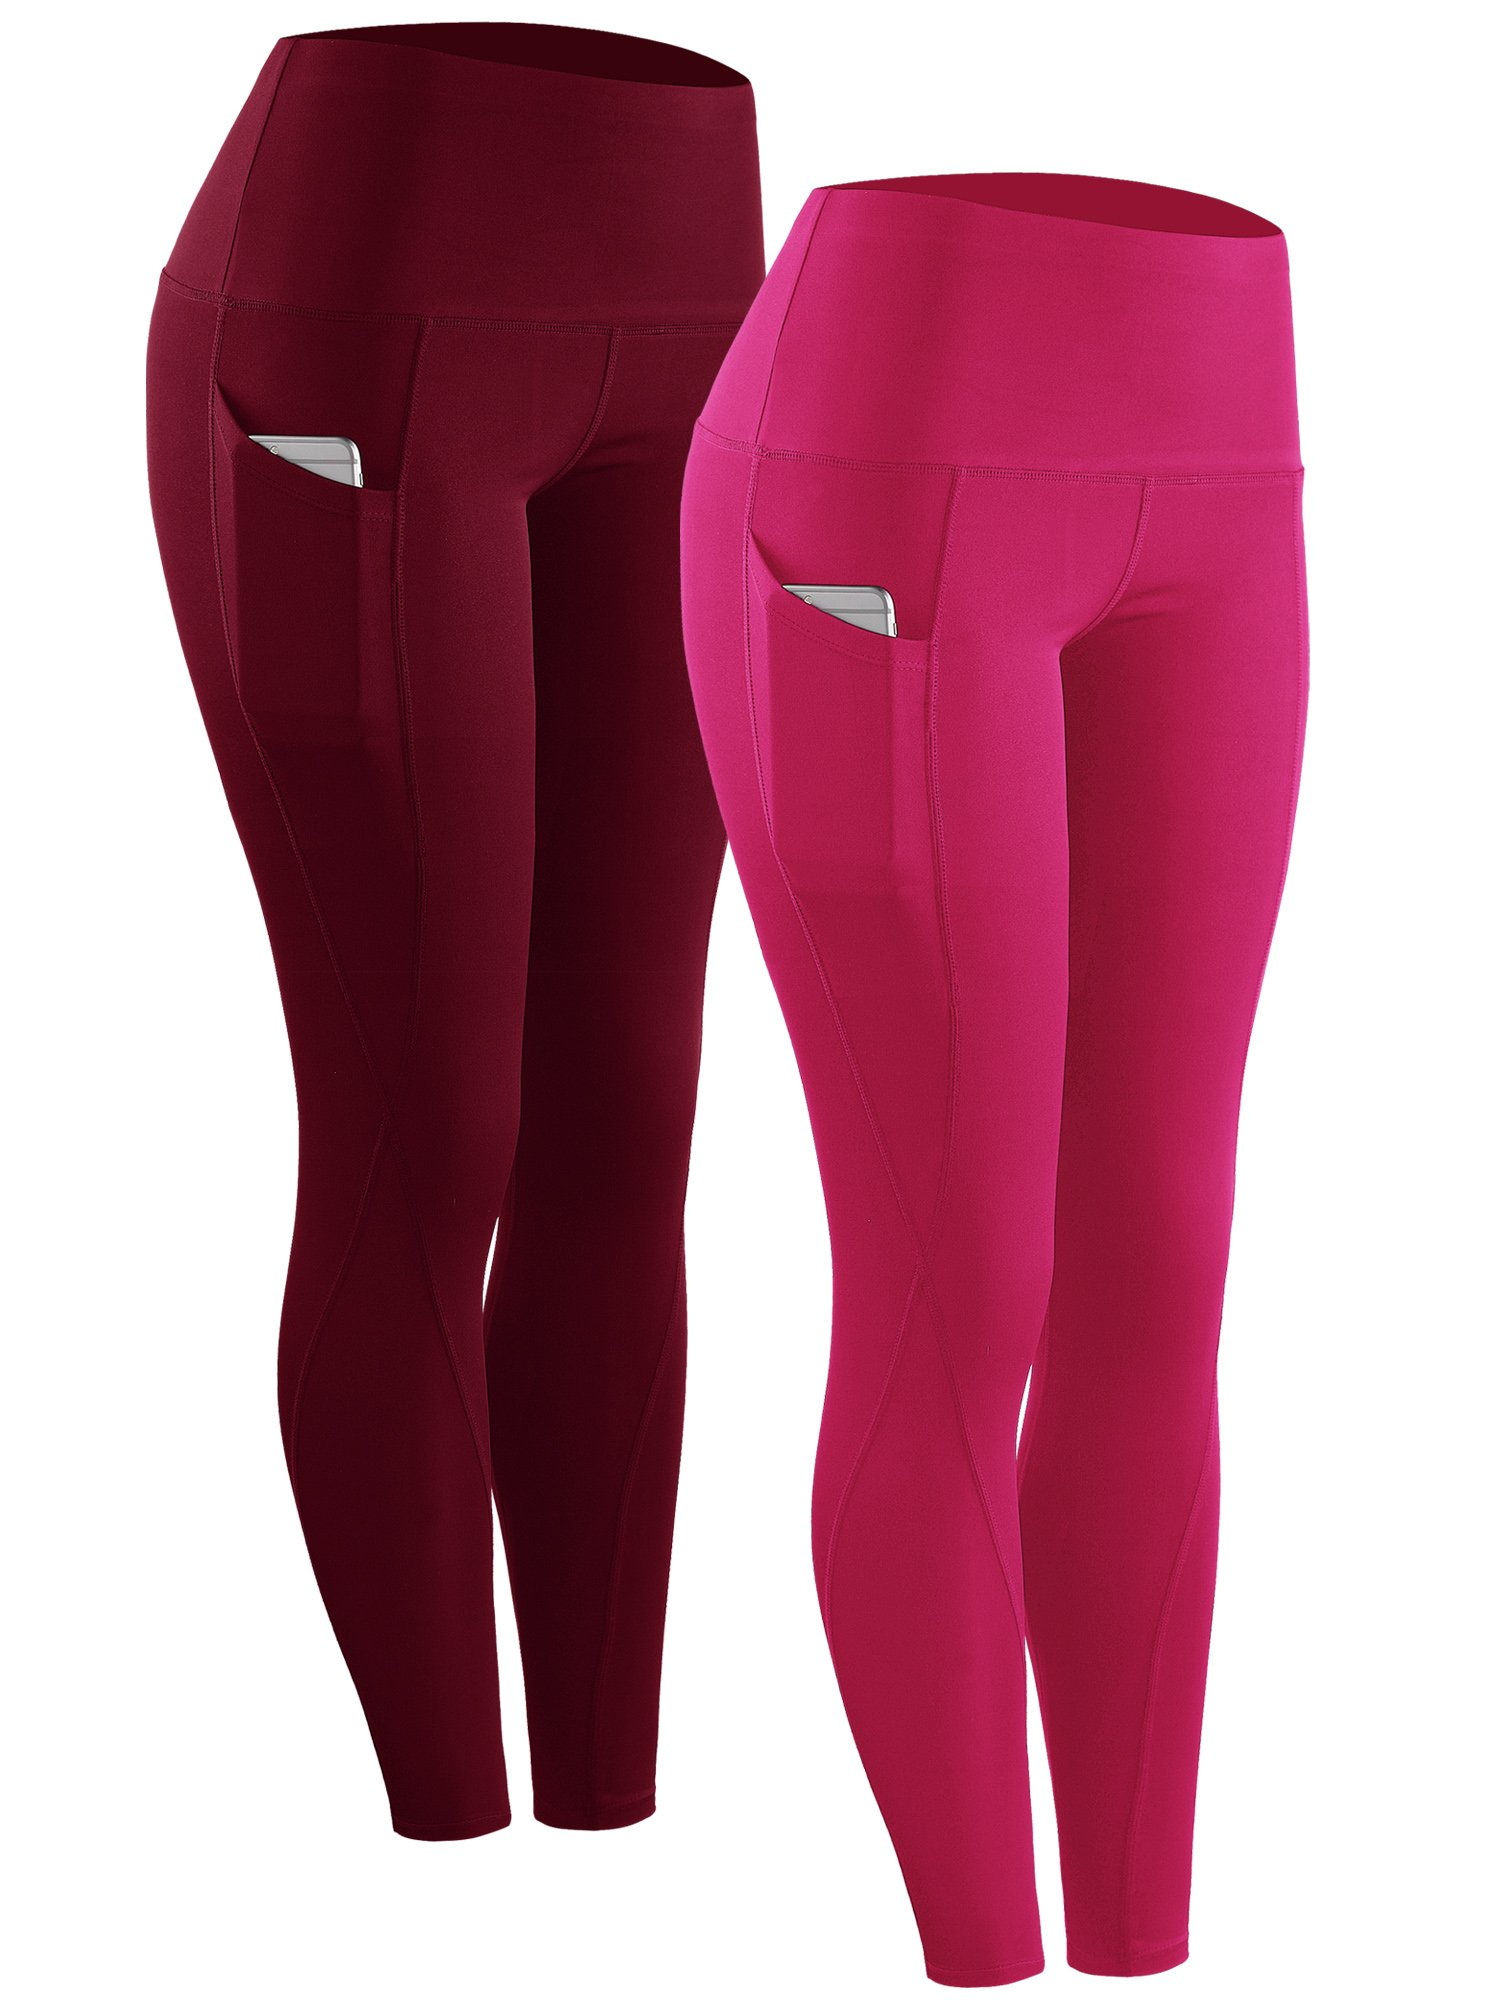 Neleus 2 Pack Tummy Control High Waist Running Workout Leggings,9017,2 Pack,Red,Rose Red,US XL,EU 2XL by Neleus